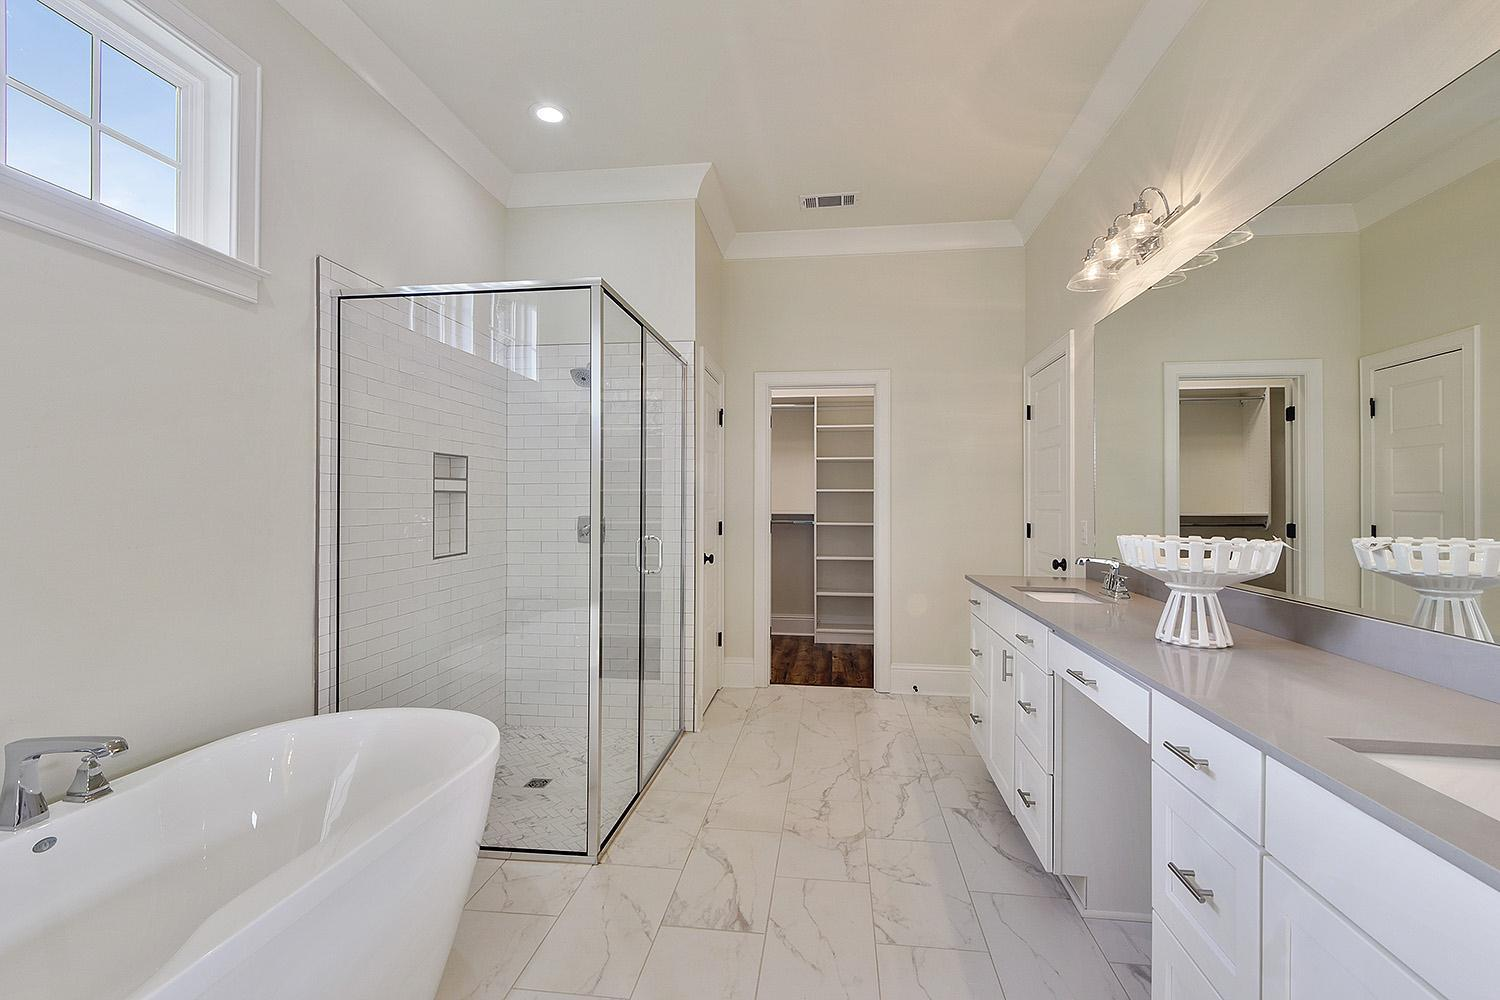 Bathroom featured in the Andre By Highland Homes in New Orleans, LA